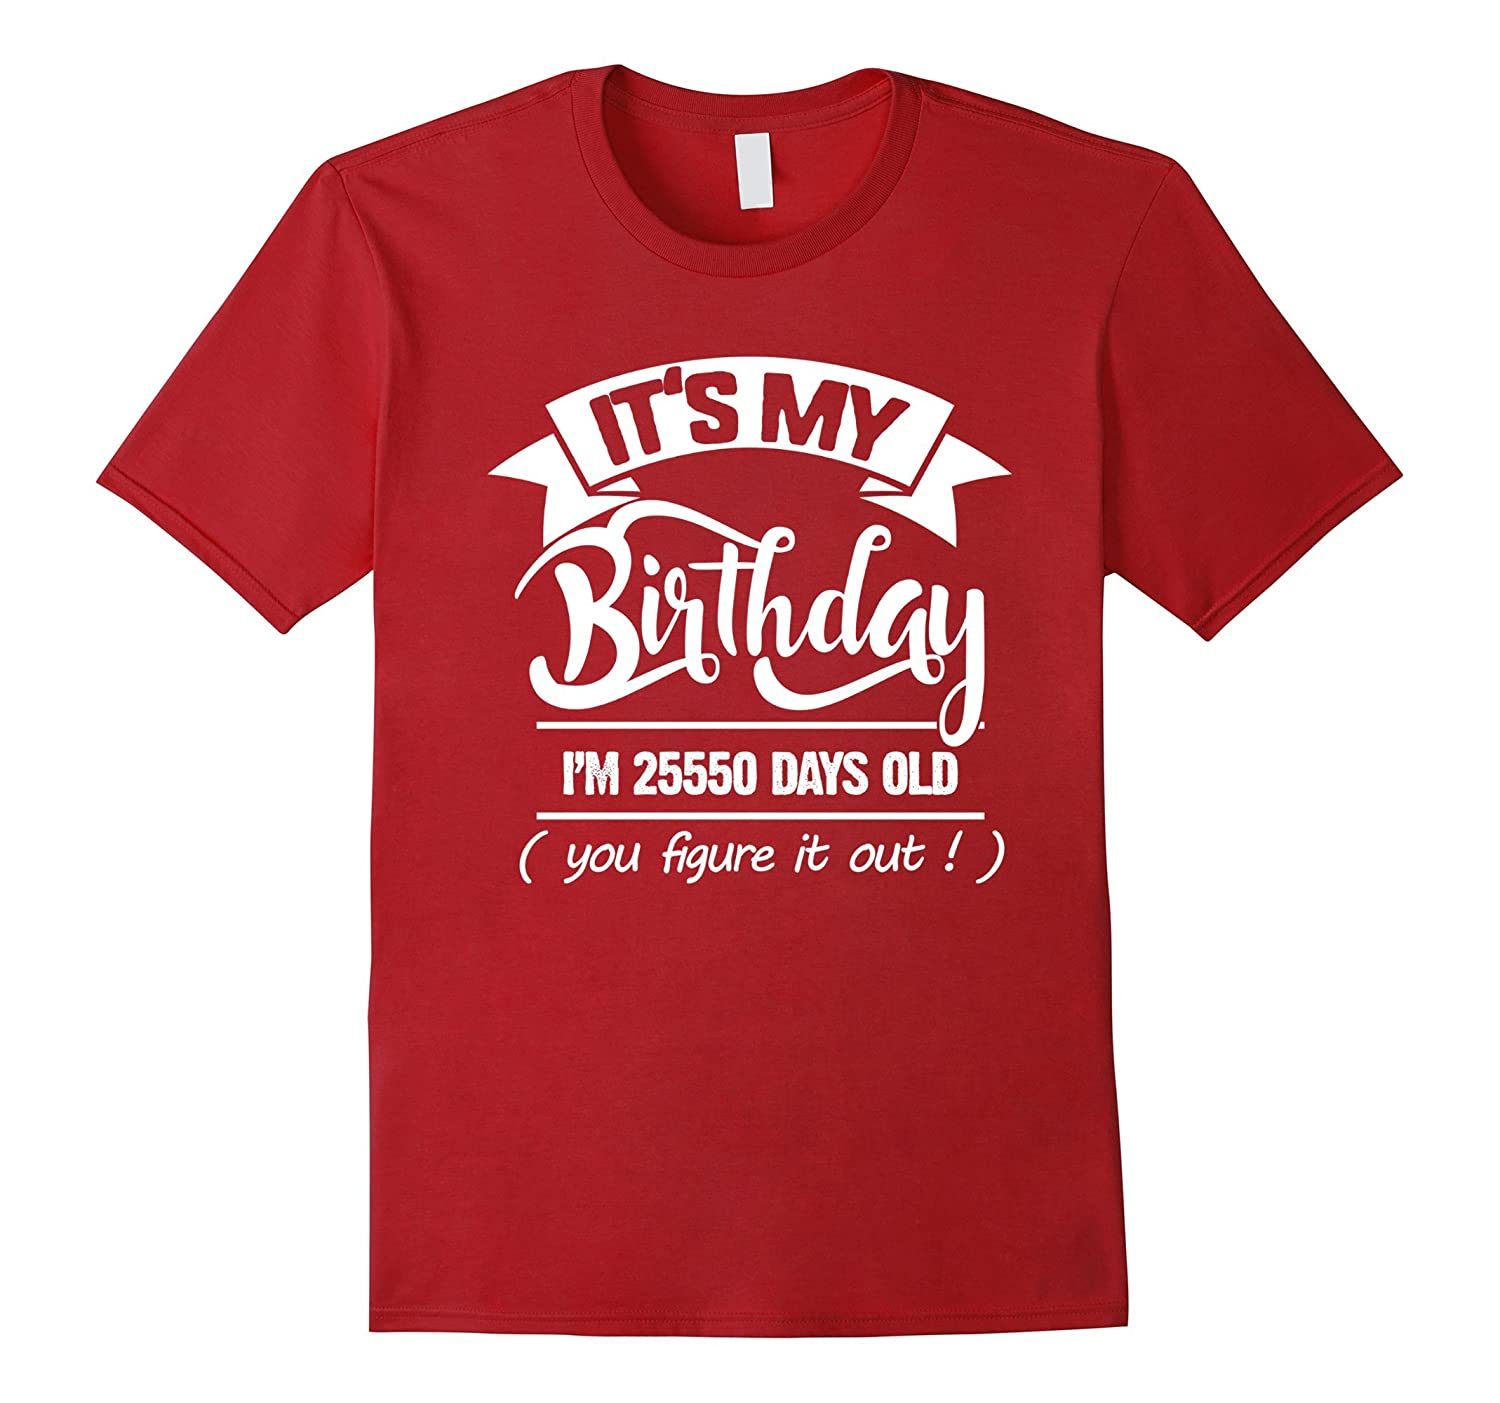 70th Birthday Gift Ideas Funny T Shirt For Men Women BN